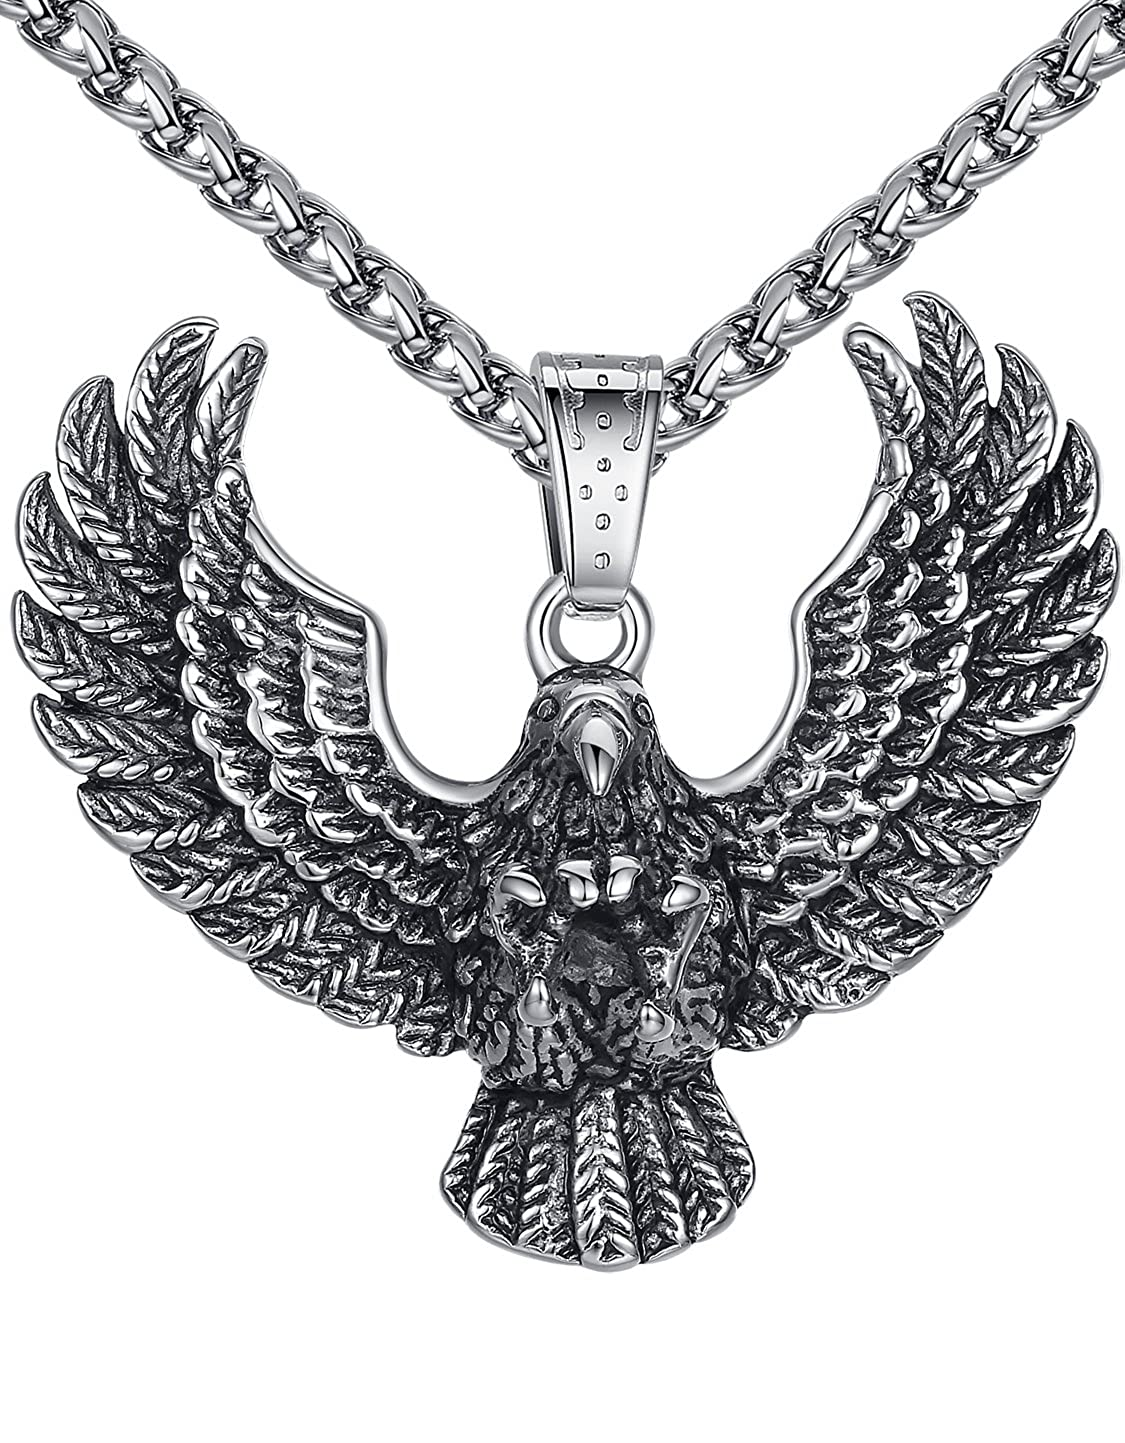 24 Link Chain Aoiy Mens Stainless Steel Large Eagle Biker Pendant Necklace aap131